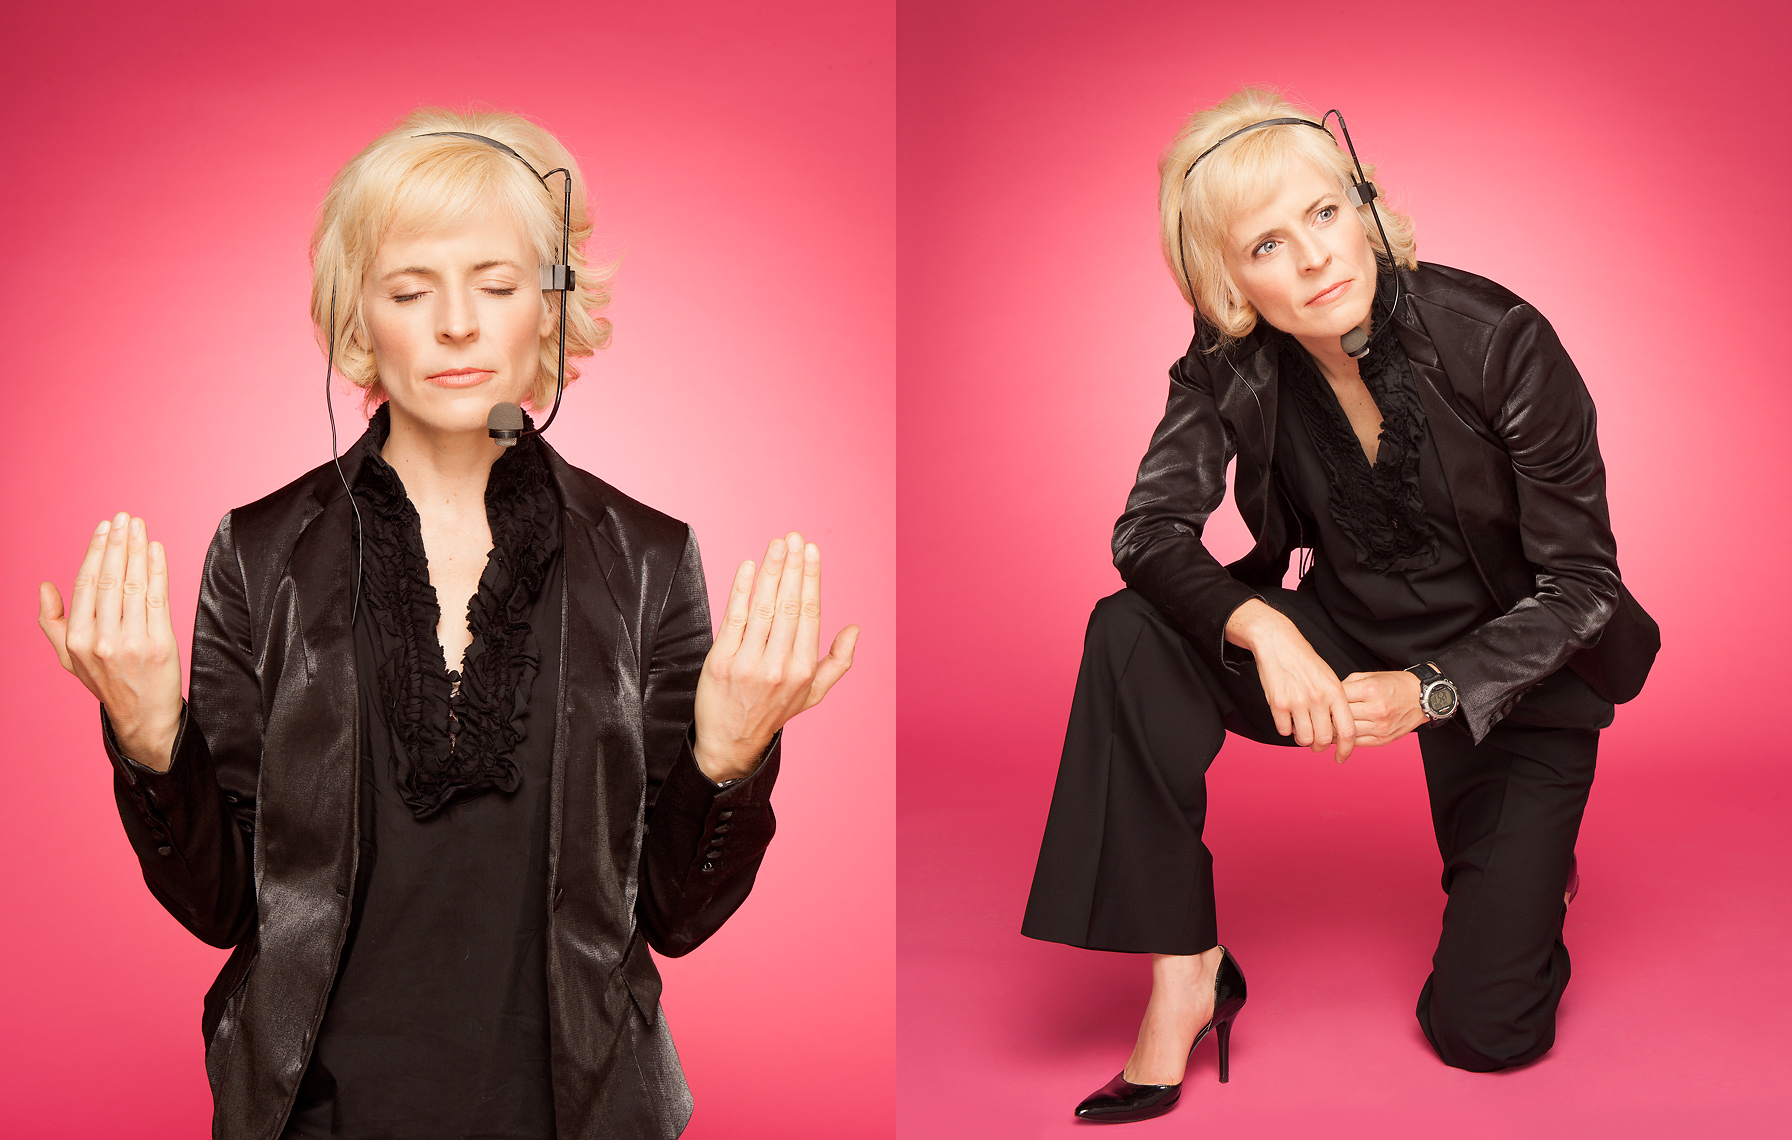 mariabamfordspread.jpg